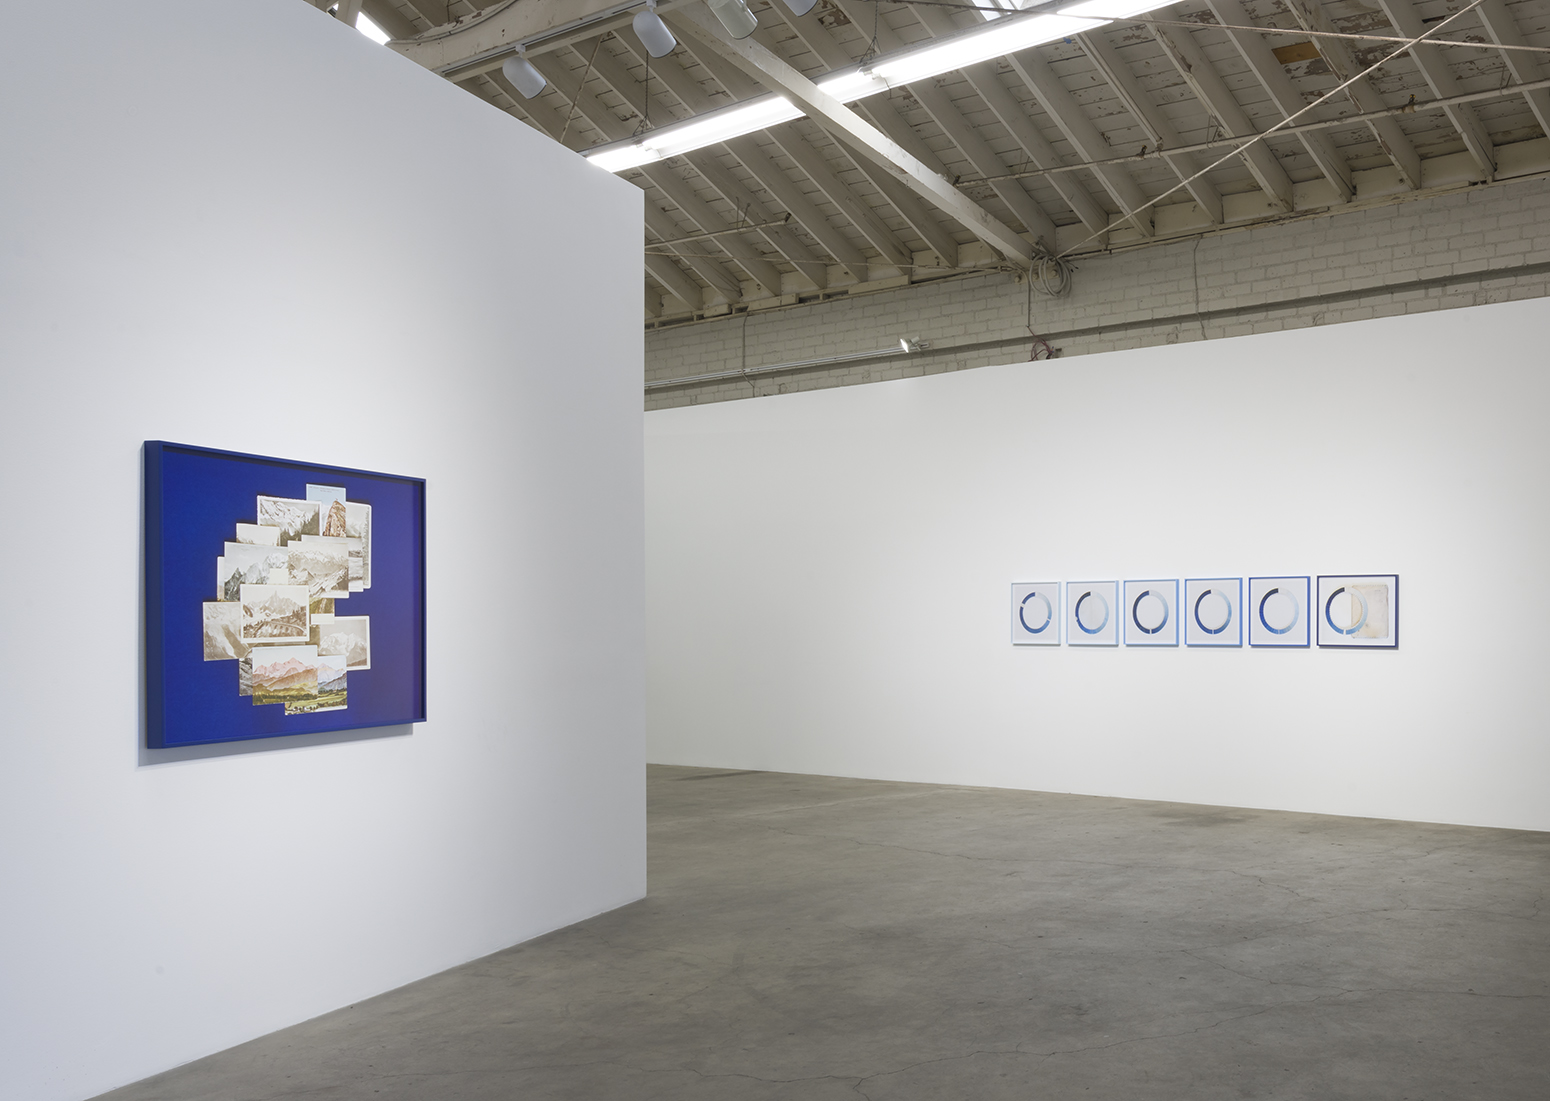 Installation View, Night Gallery, Los Angeles, 2018